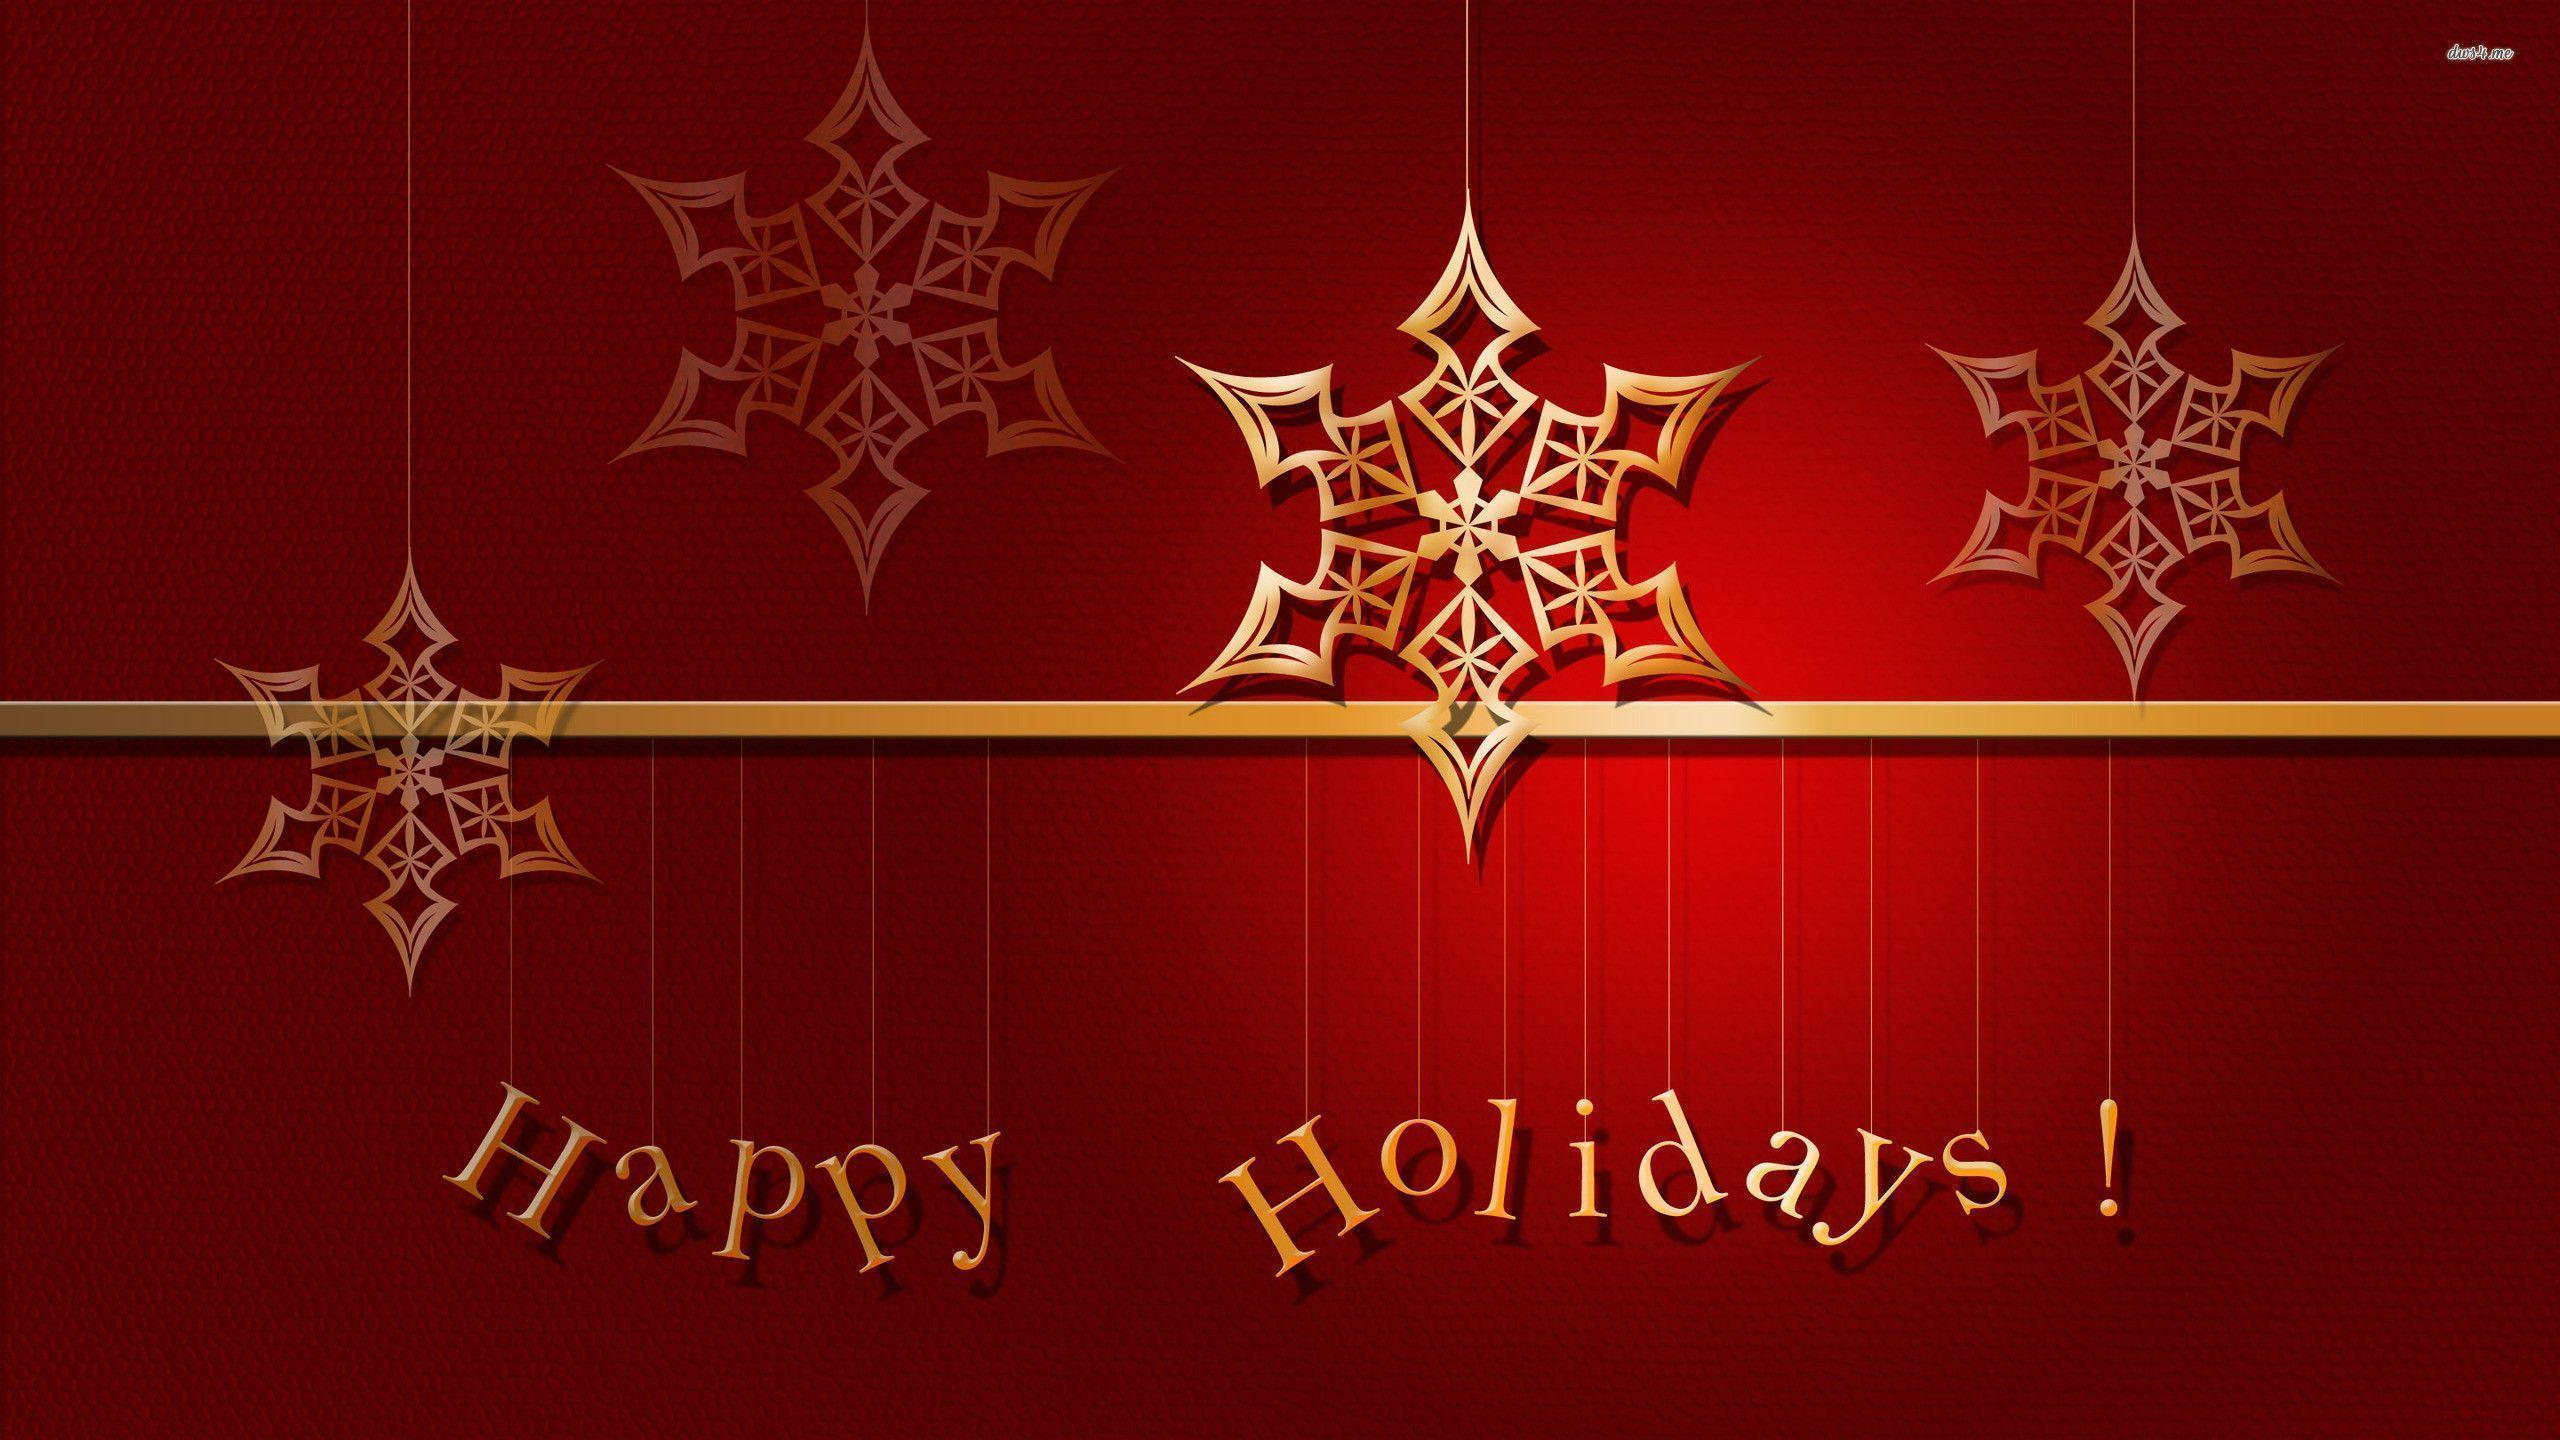 happy holidays backgrounds - wallpaper cave